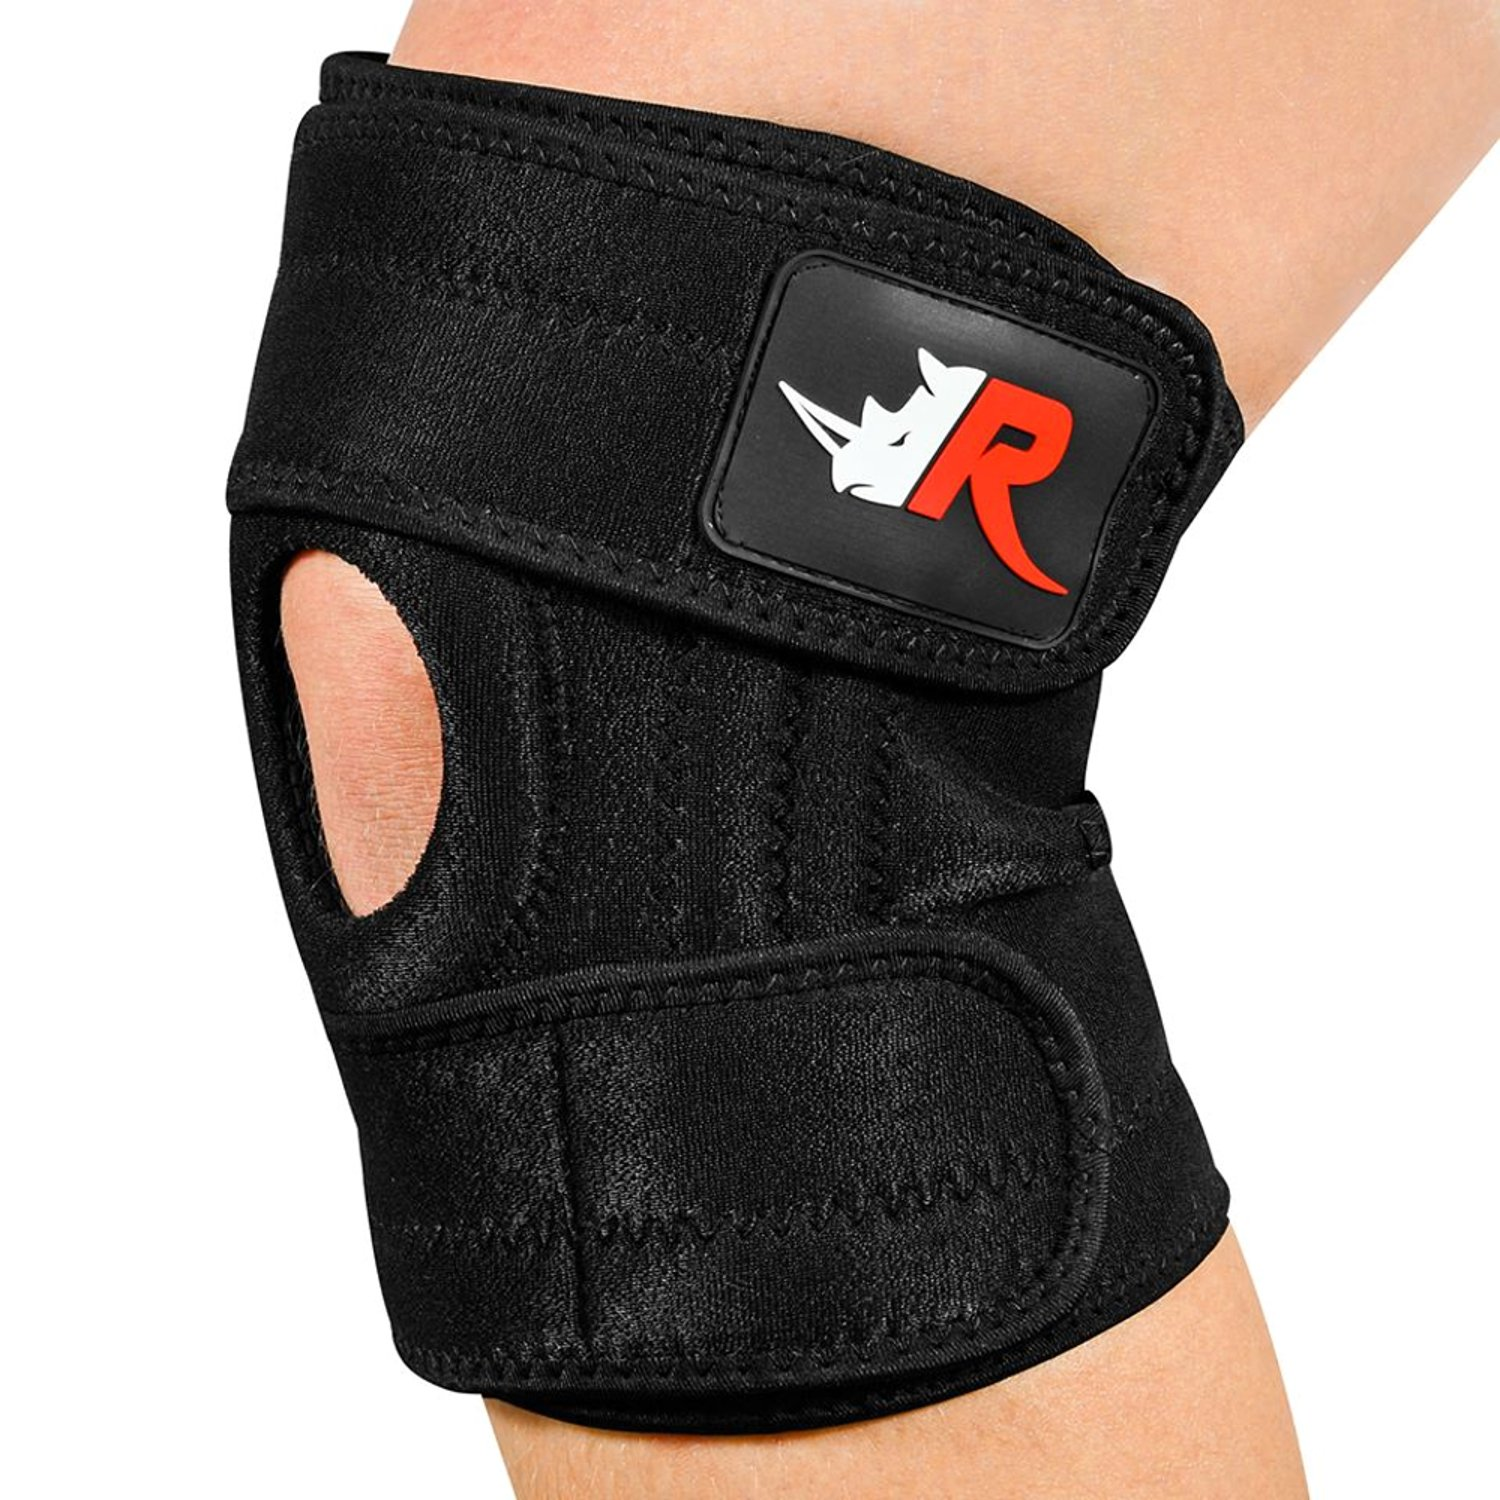 Large Knee Brace (w/Bag) - Adjustable Support for Arthritis, Meniscus Tear, ACL, Running, Sports | Non-Slip Patella Protector Relieves Pain by Rugged Rhino